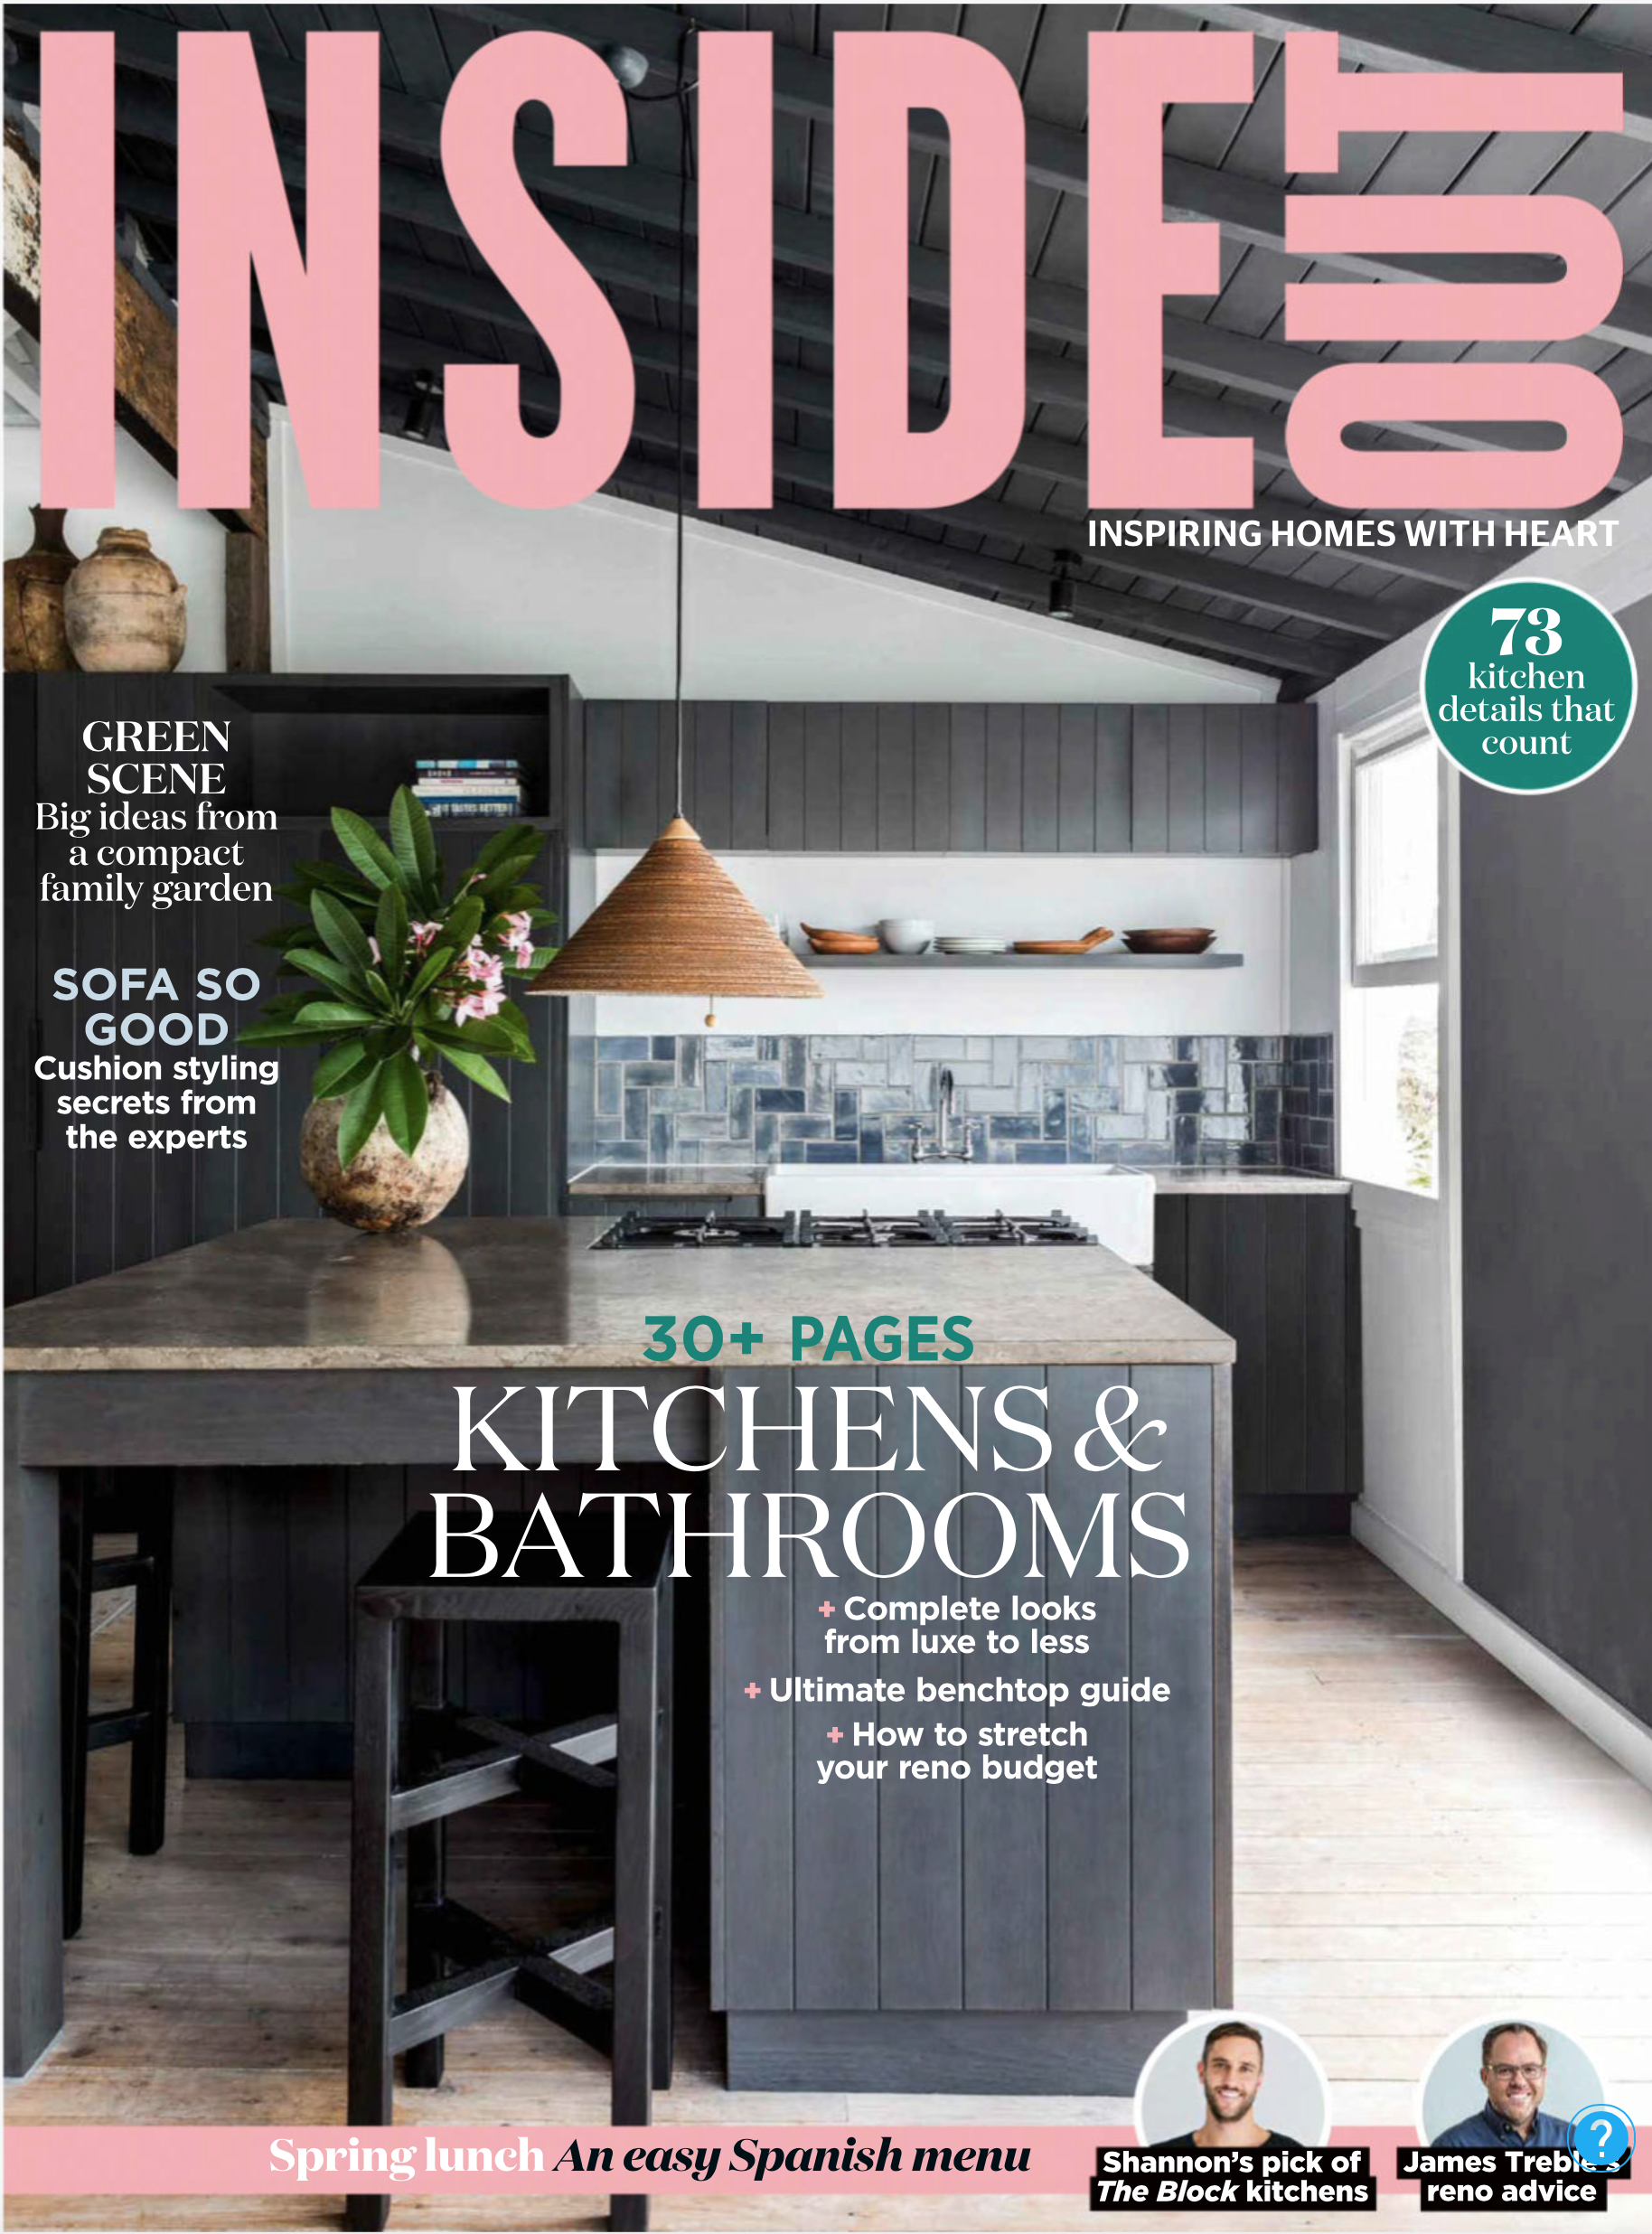 Inside Out Oct 2018 - Northern Beaches home by Kate Manning Design. Styling by Jason Mowen Cover and story